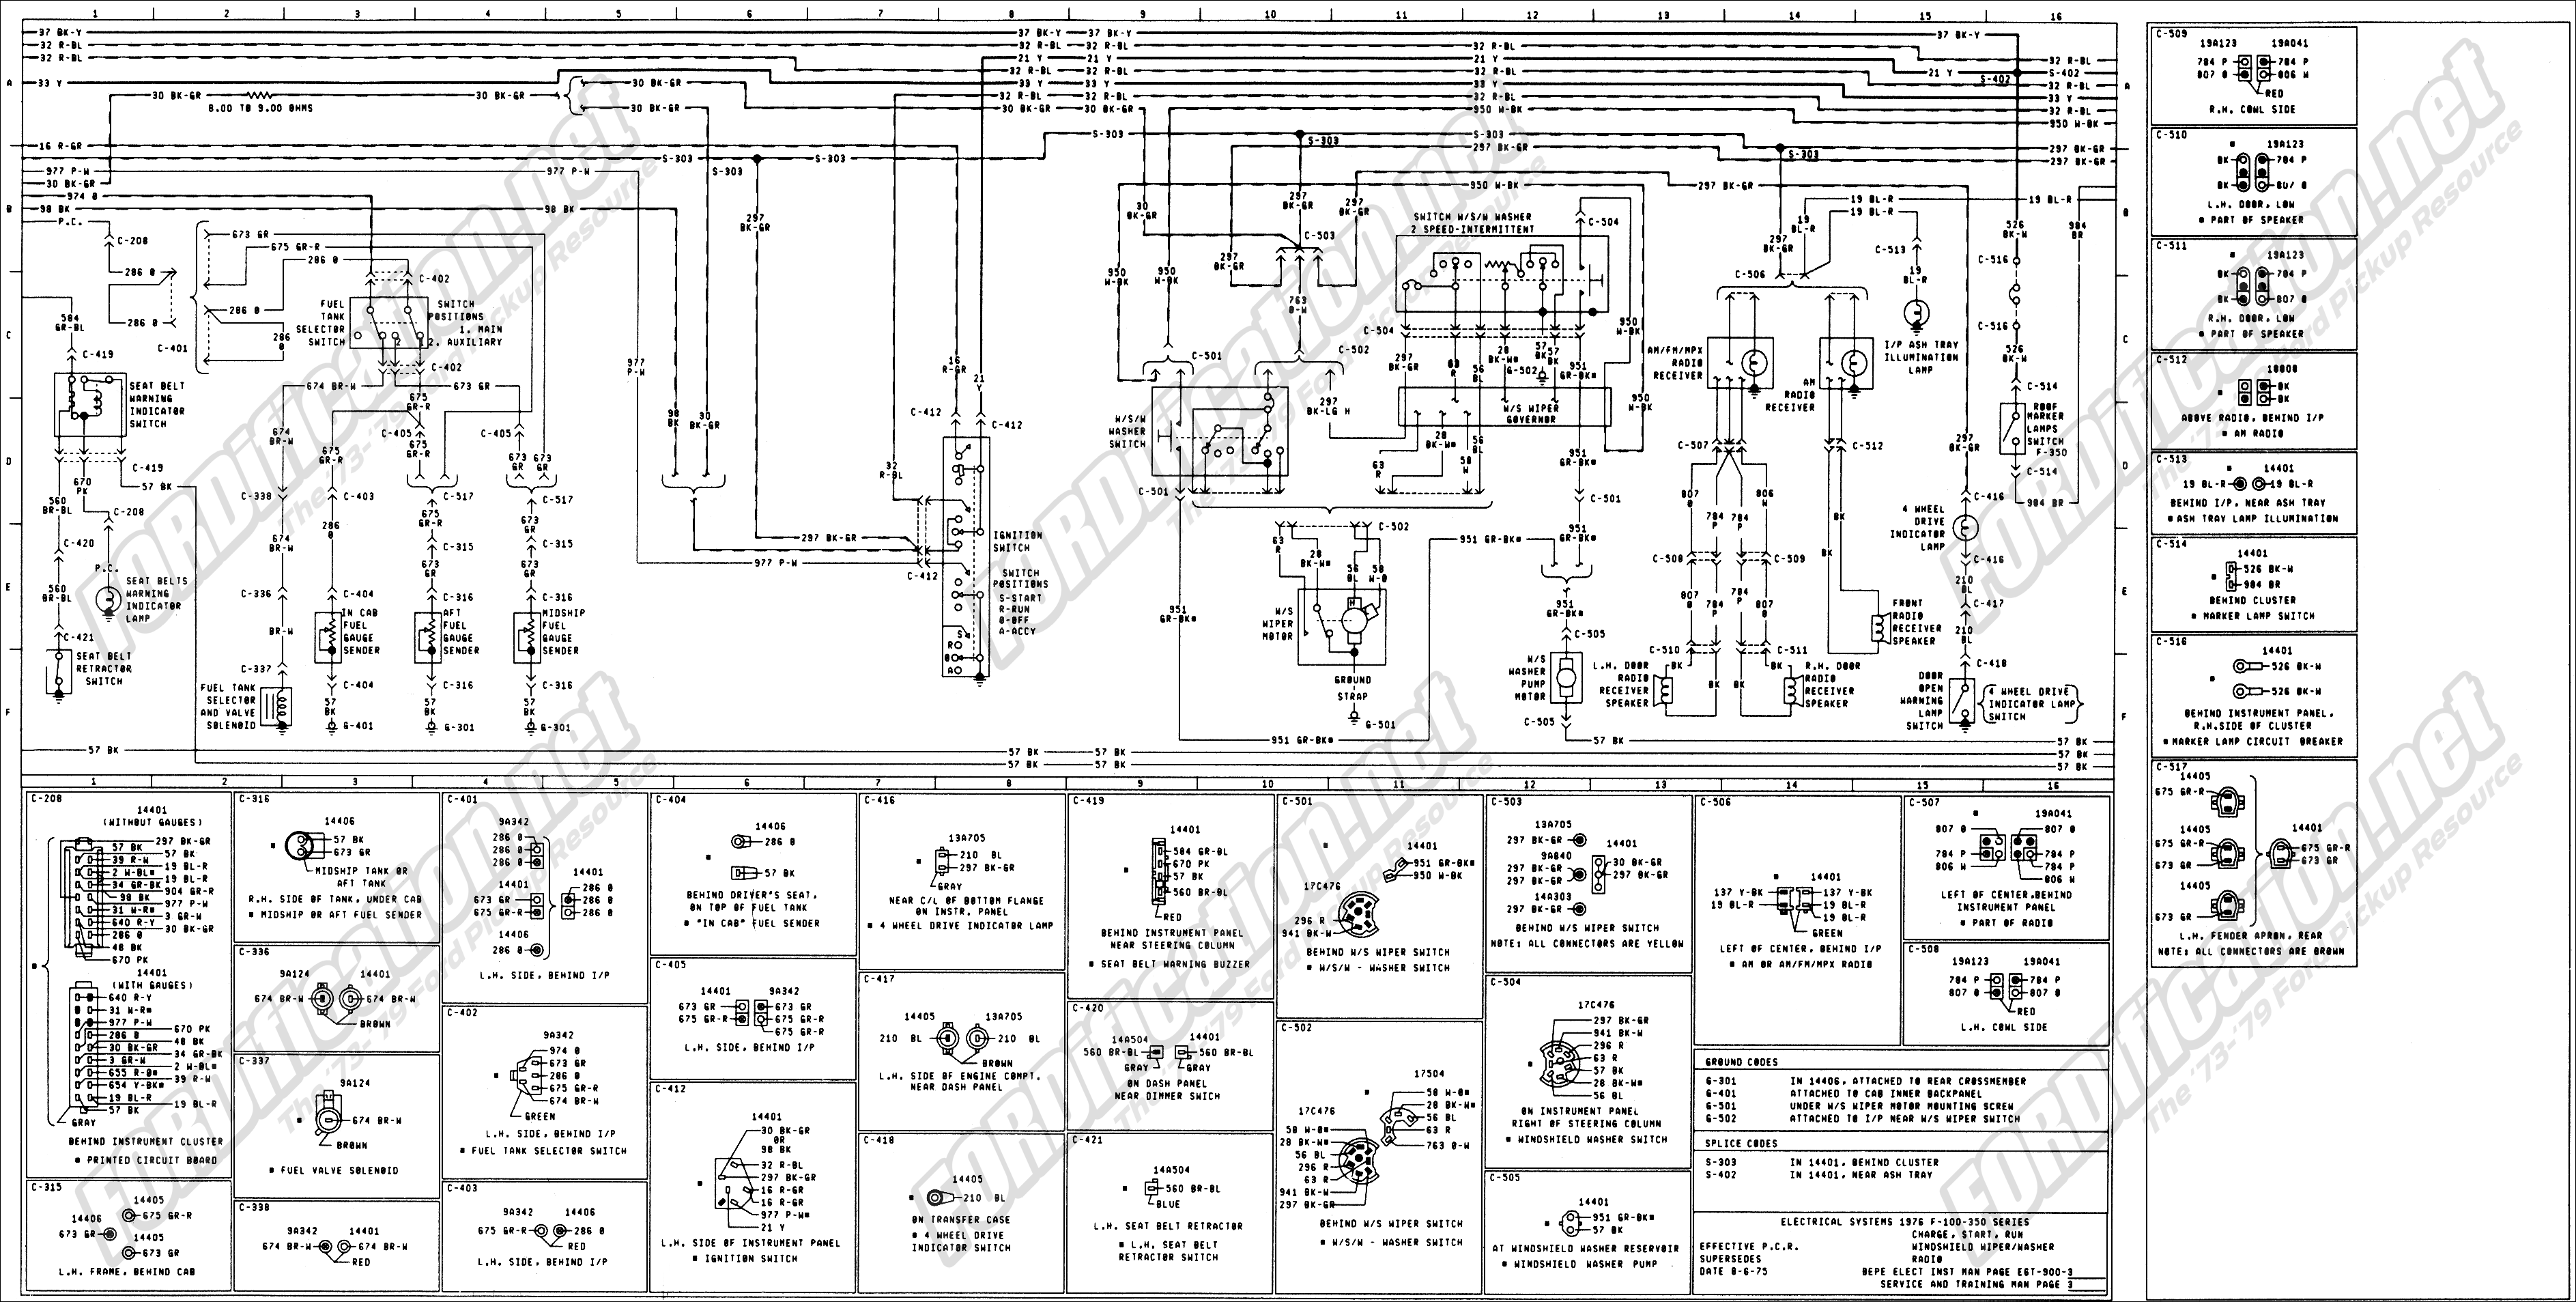 wiring_76master_3of9 1987 ford f 250 wiring diagram wiring diagram simonand 2008 ford f250 fuse box diagram at crackthecode.co